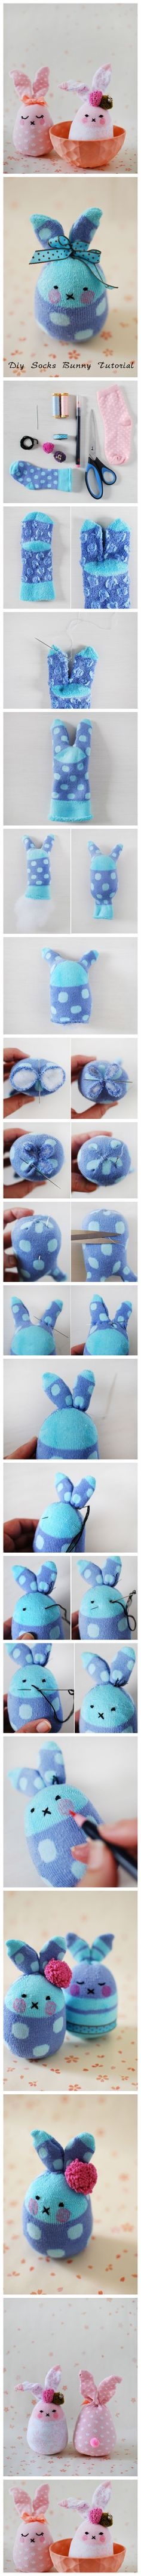 tiny cute kawaii easter bunny rabbit plushie pals to fit in eggs to make for friends happy easter everyone Bricolage Tutorial Lapin Chaussettes Sock Crafts, Cute Crafts, Fabric Crafts, Diy And Crafts, Crafts For Kids, Sock Bunny, Bunny Rabbit, Happy Easter Everyone, Sock Toys